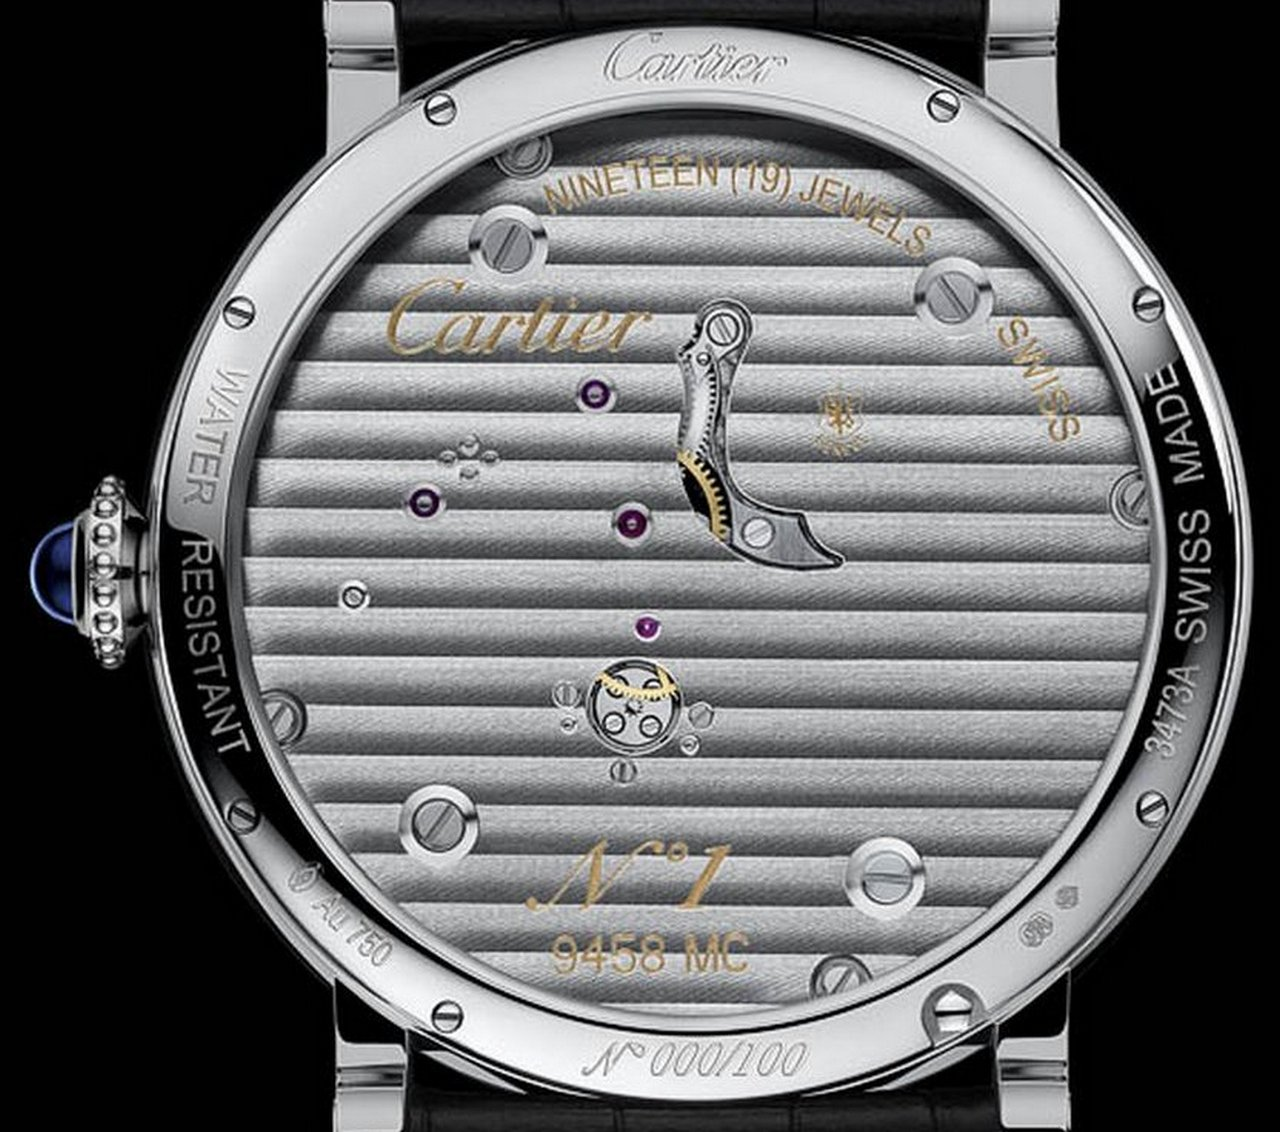 anteprima-sihh-2015-cartier-rotonde-reversed-tourbillon-prezzo-price_0-100_7